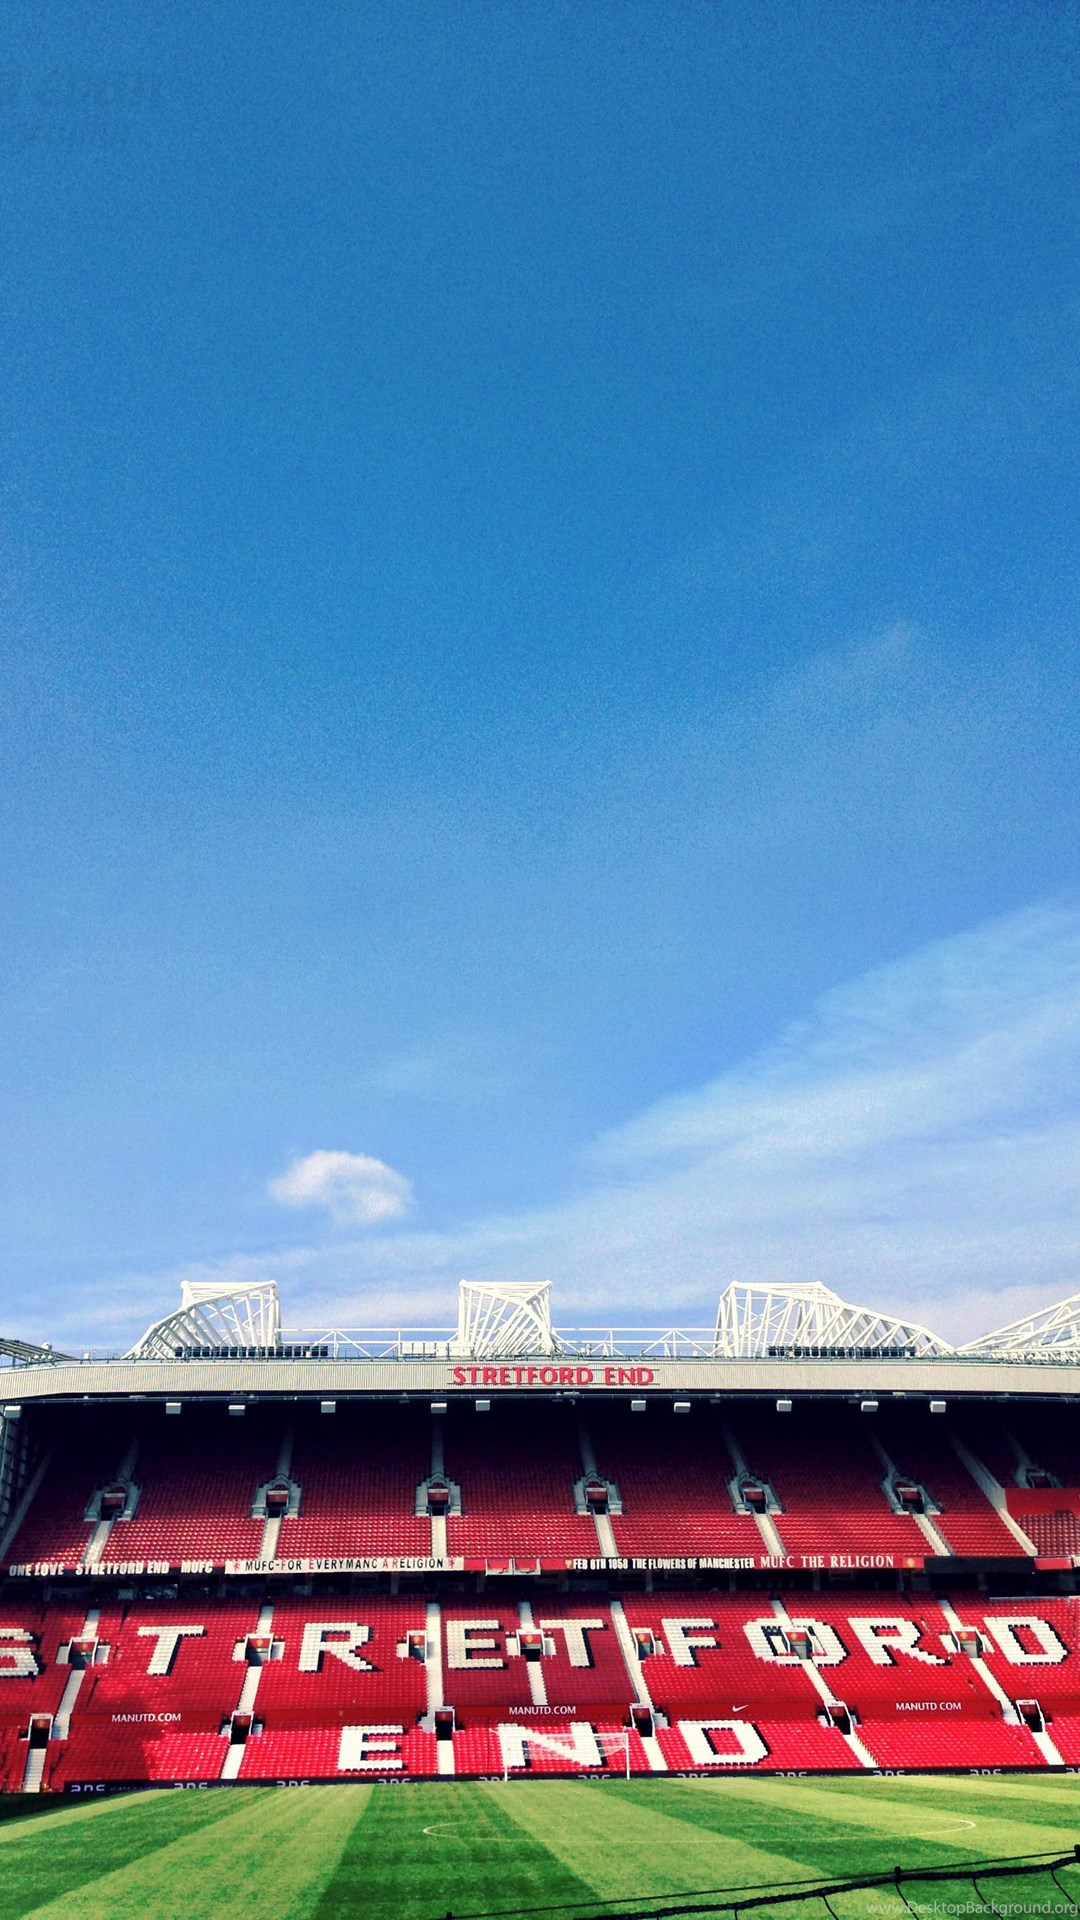 Man United S Old Trafford Stadium Hd Wallpapers For Mobile Free Download